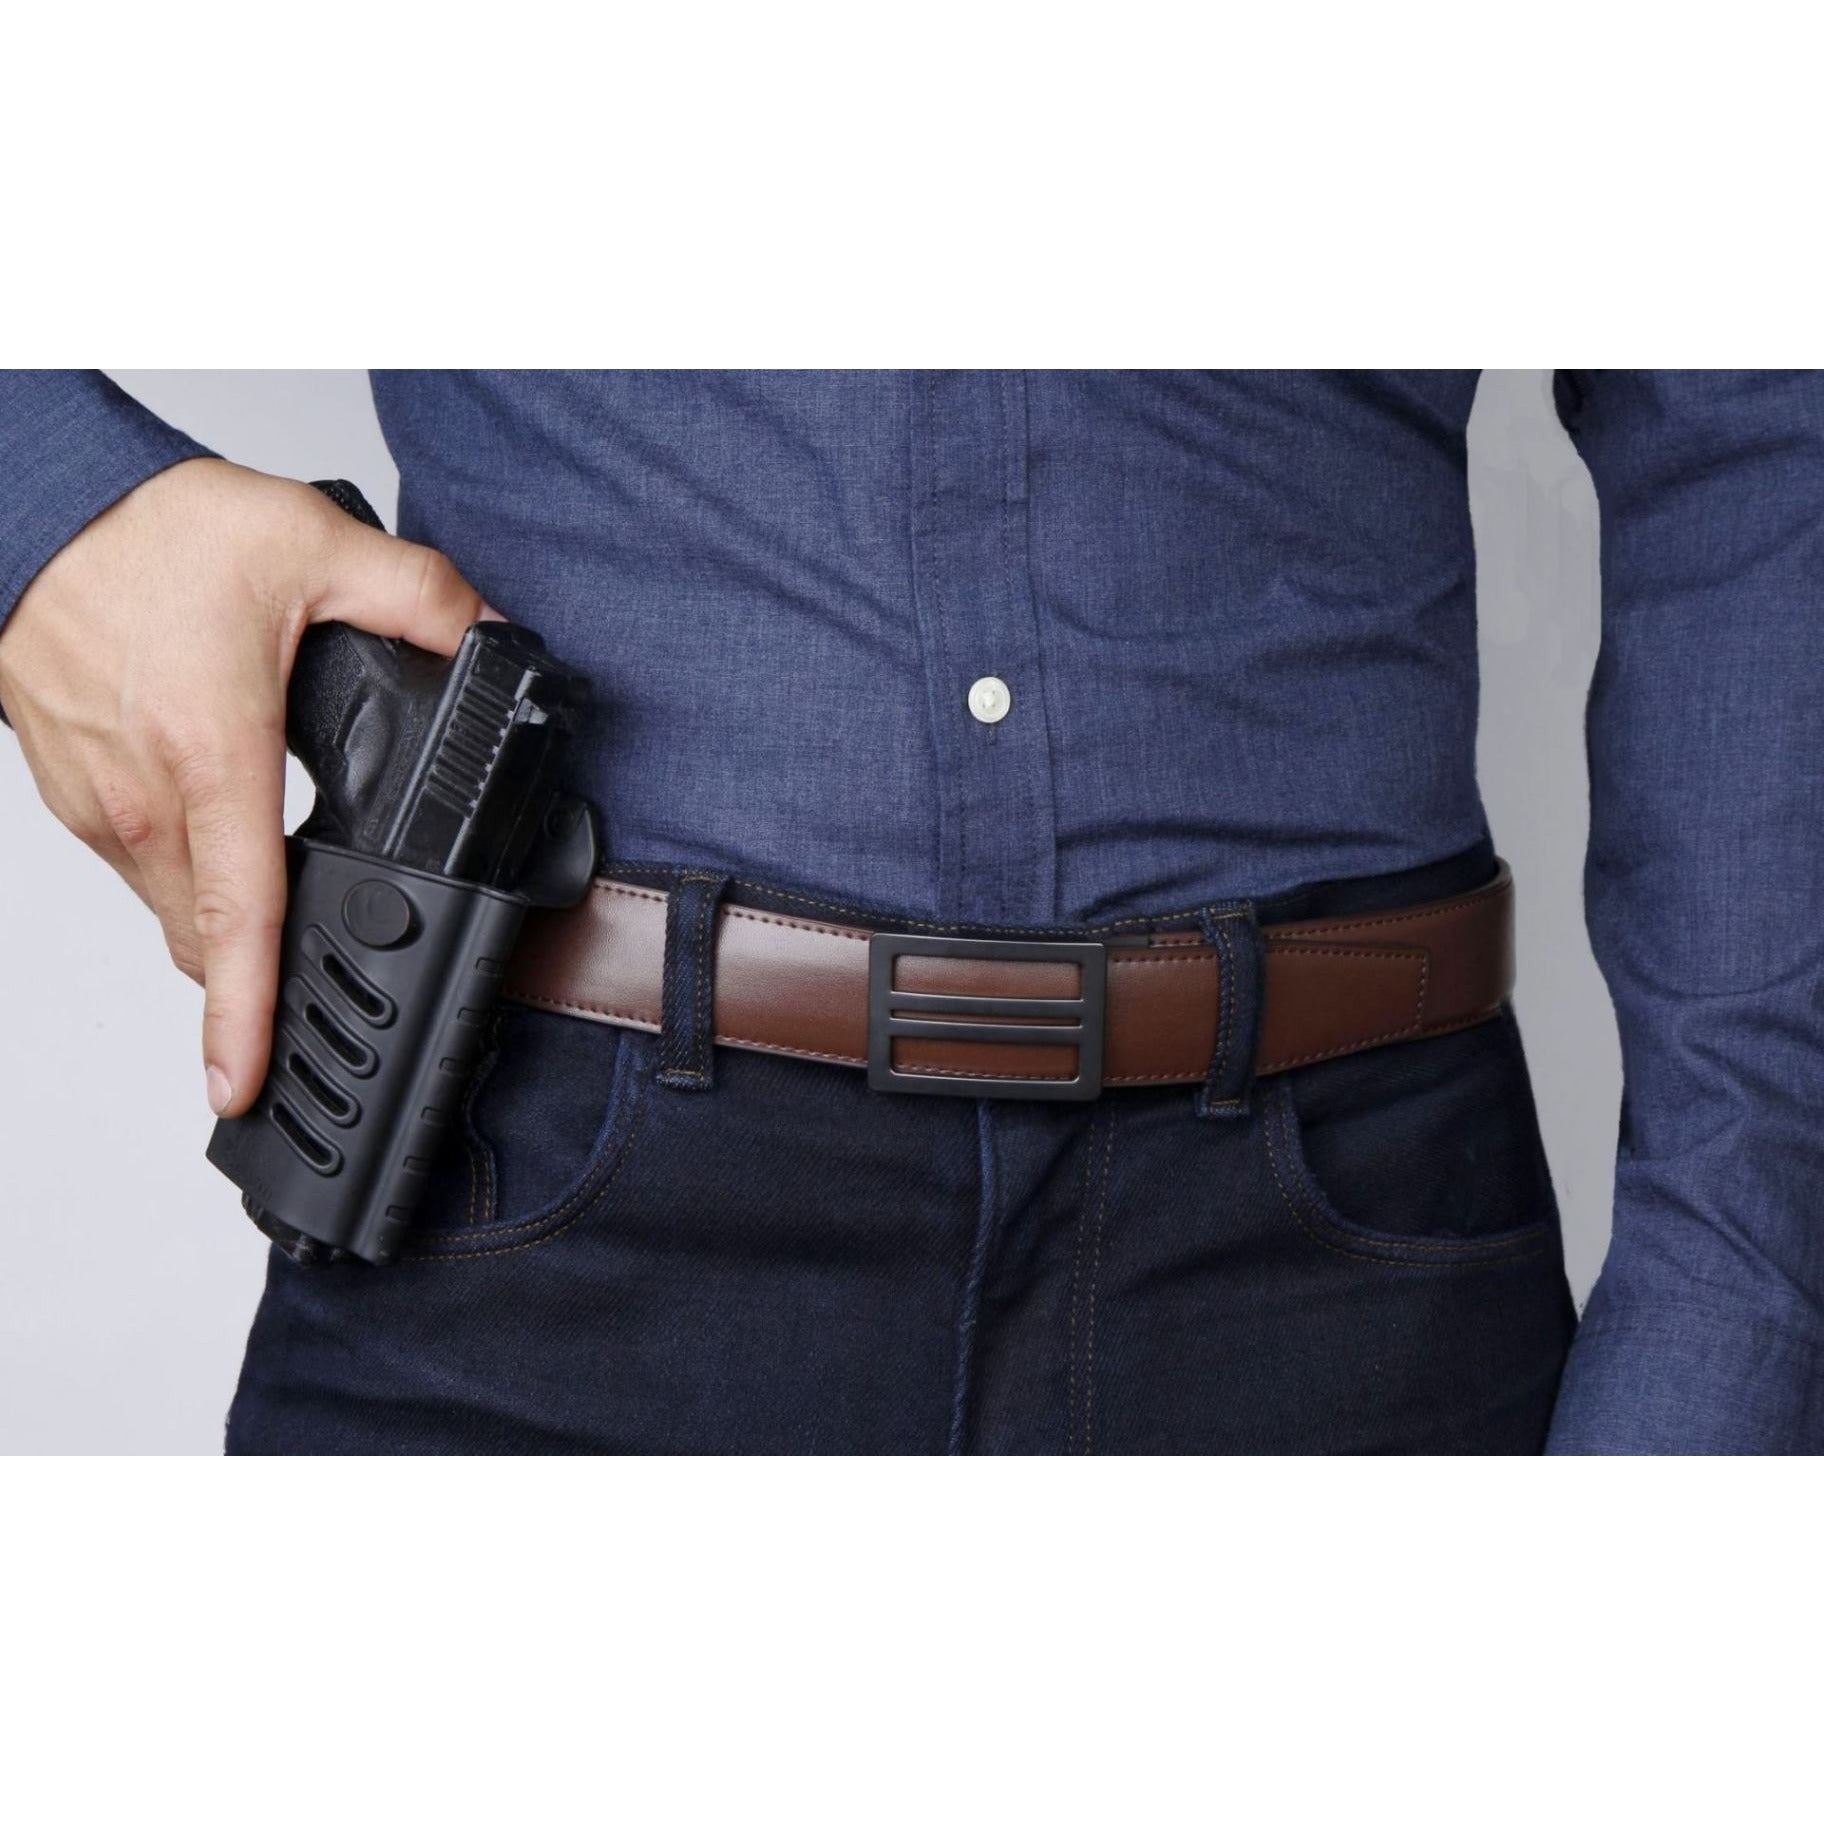 Kore Leather Gun Belts X1 Reinforced Brown Top Grain Leather Belt Kore Essentials Kore essentials gun belt for sale. x1 buckle brown leather gun belt